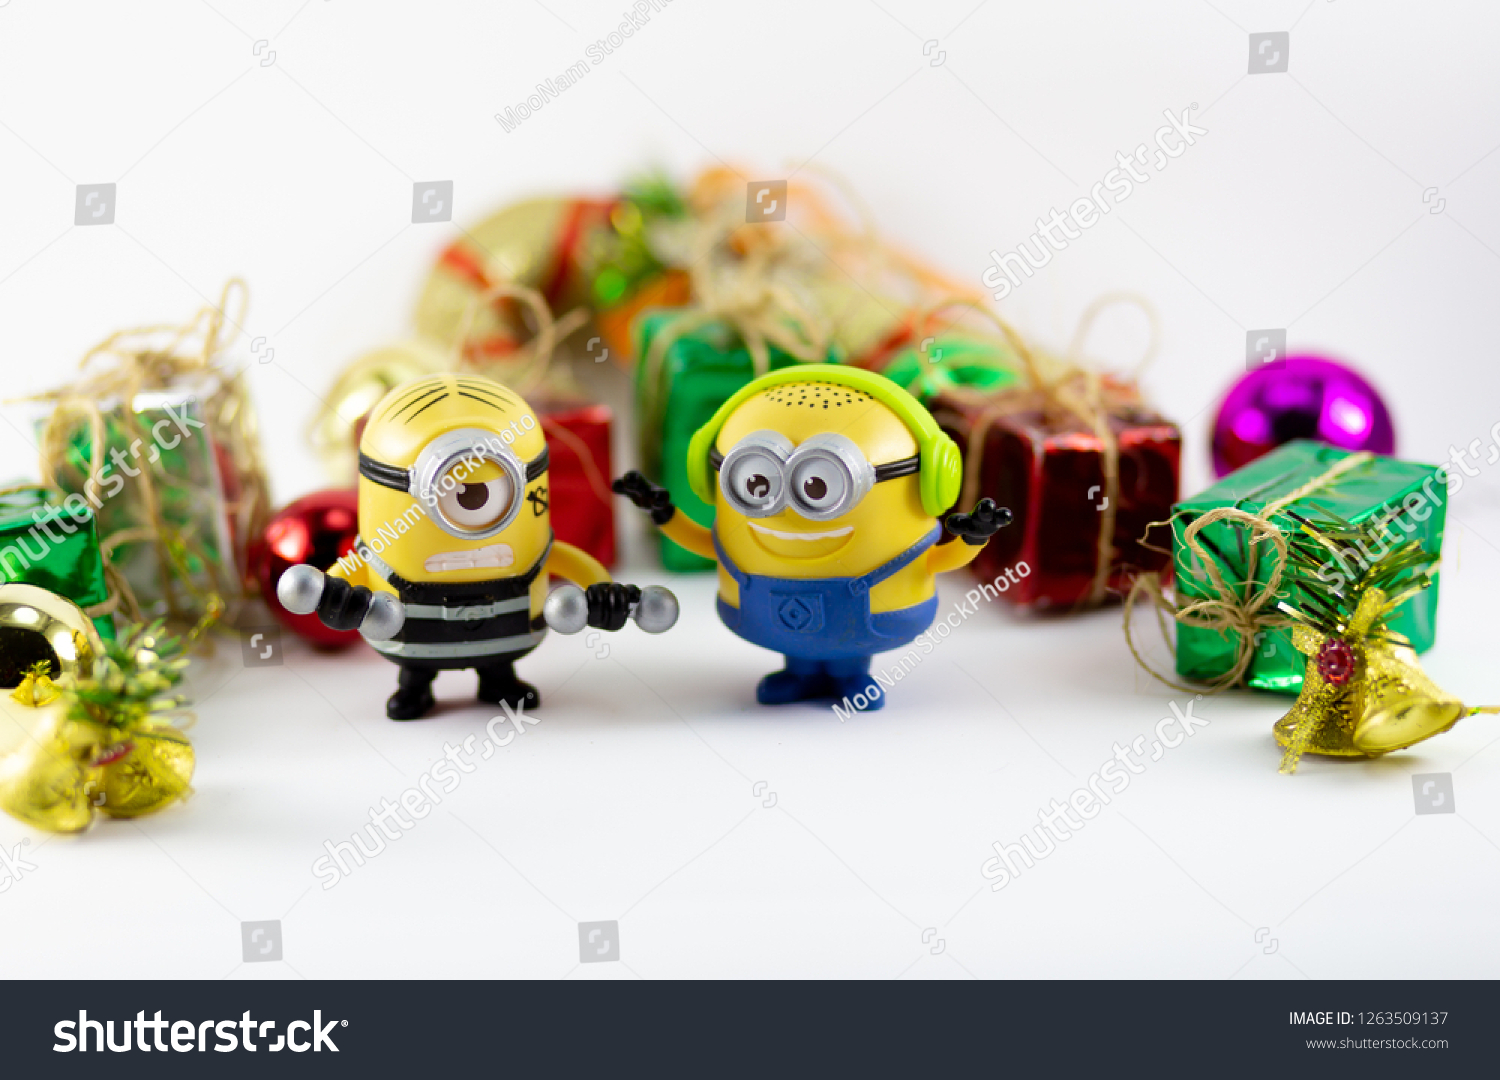 Image of: Despicable Me Bangkokthailand Dec 2018 Minions Toy And Gift Box New Year On Bangkok Thailand Dec 2018 Minions Toy Gift Stock Photo edit Now